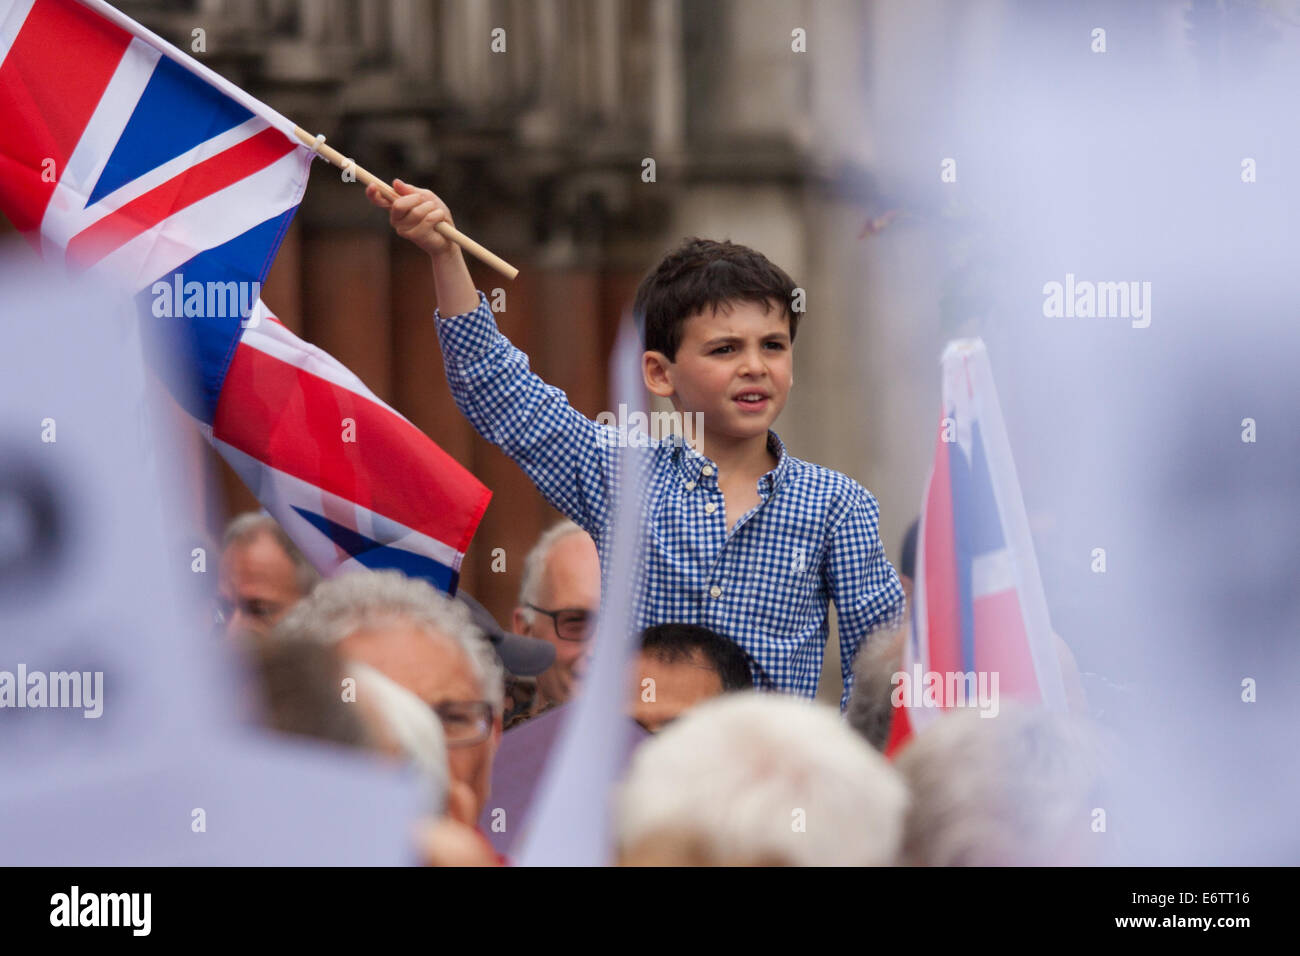 London, UK. 31st Aug, 2014. Thousands of Jews and their supporters orf all ages from London and across the UK demand - Stock Image